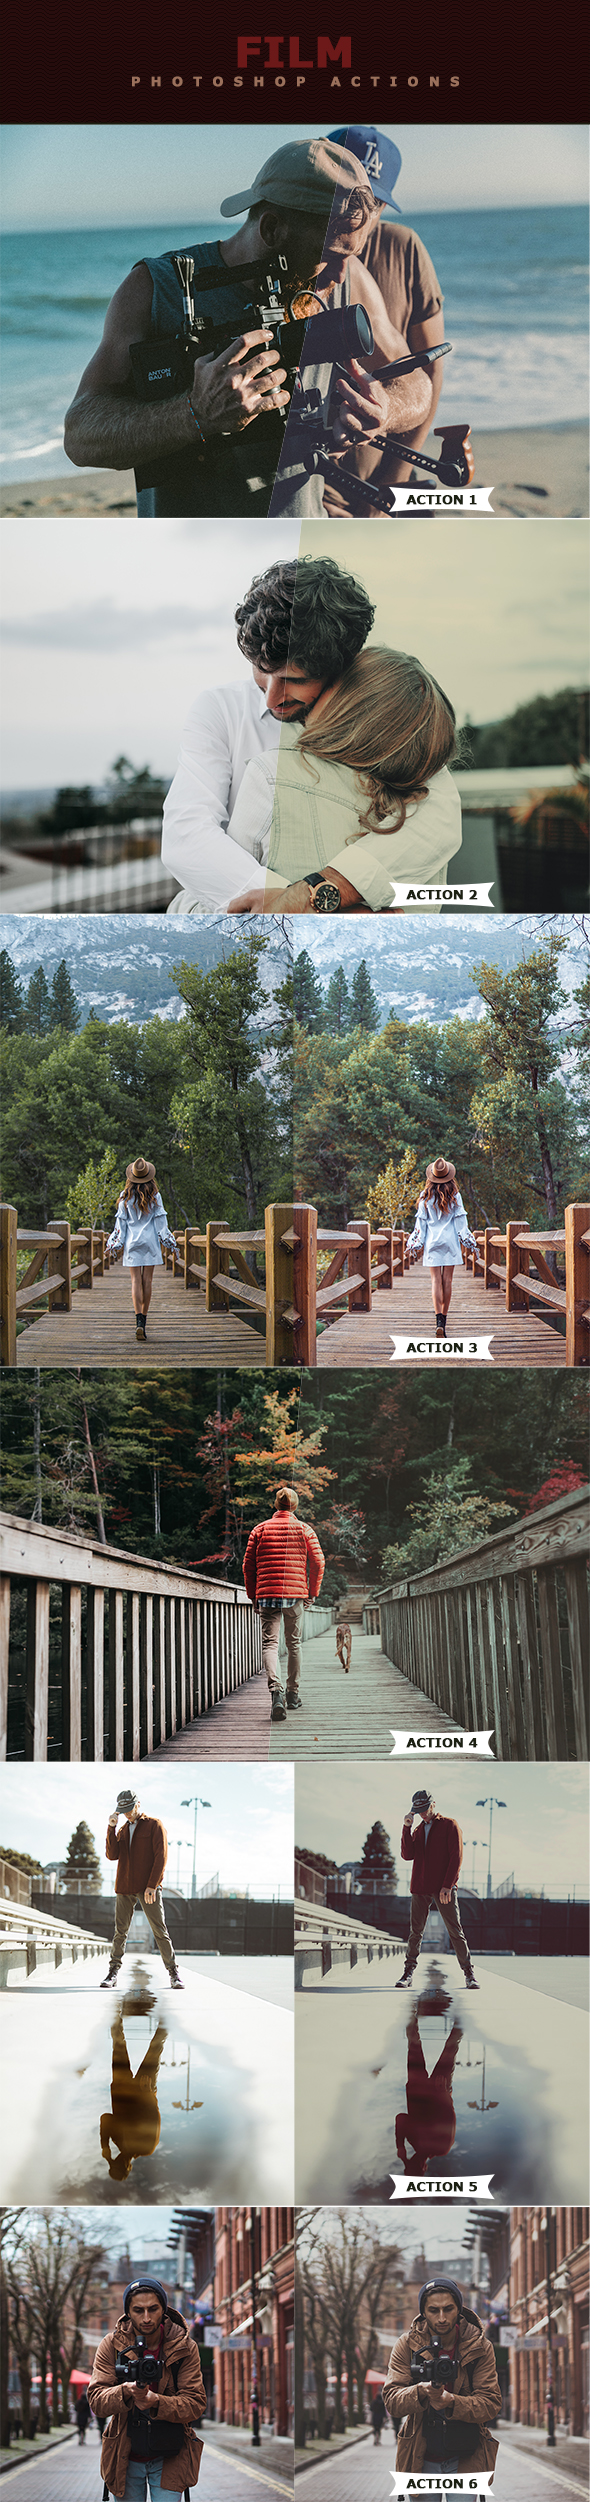 Film Photoshop Actions - Photo Effects Actions